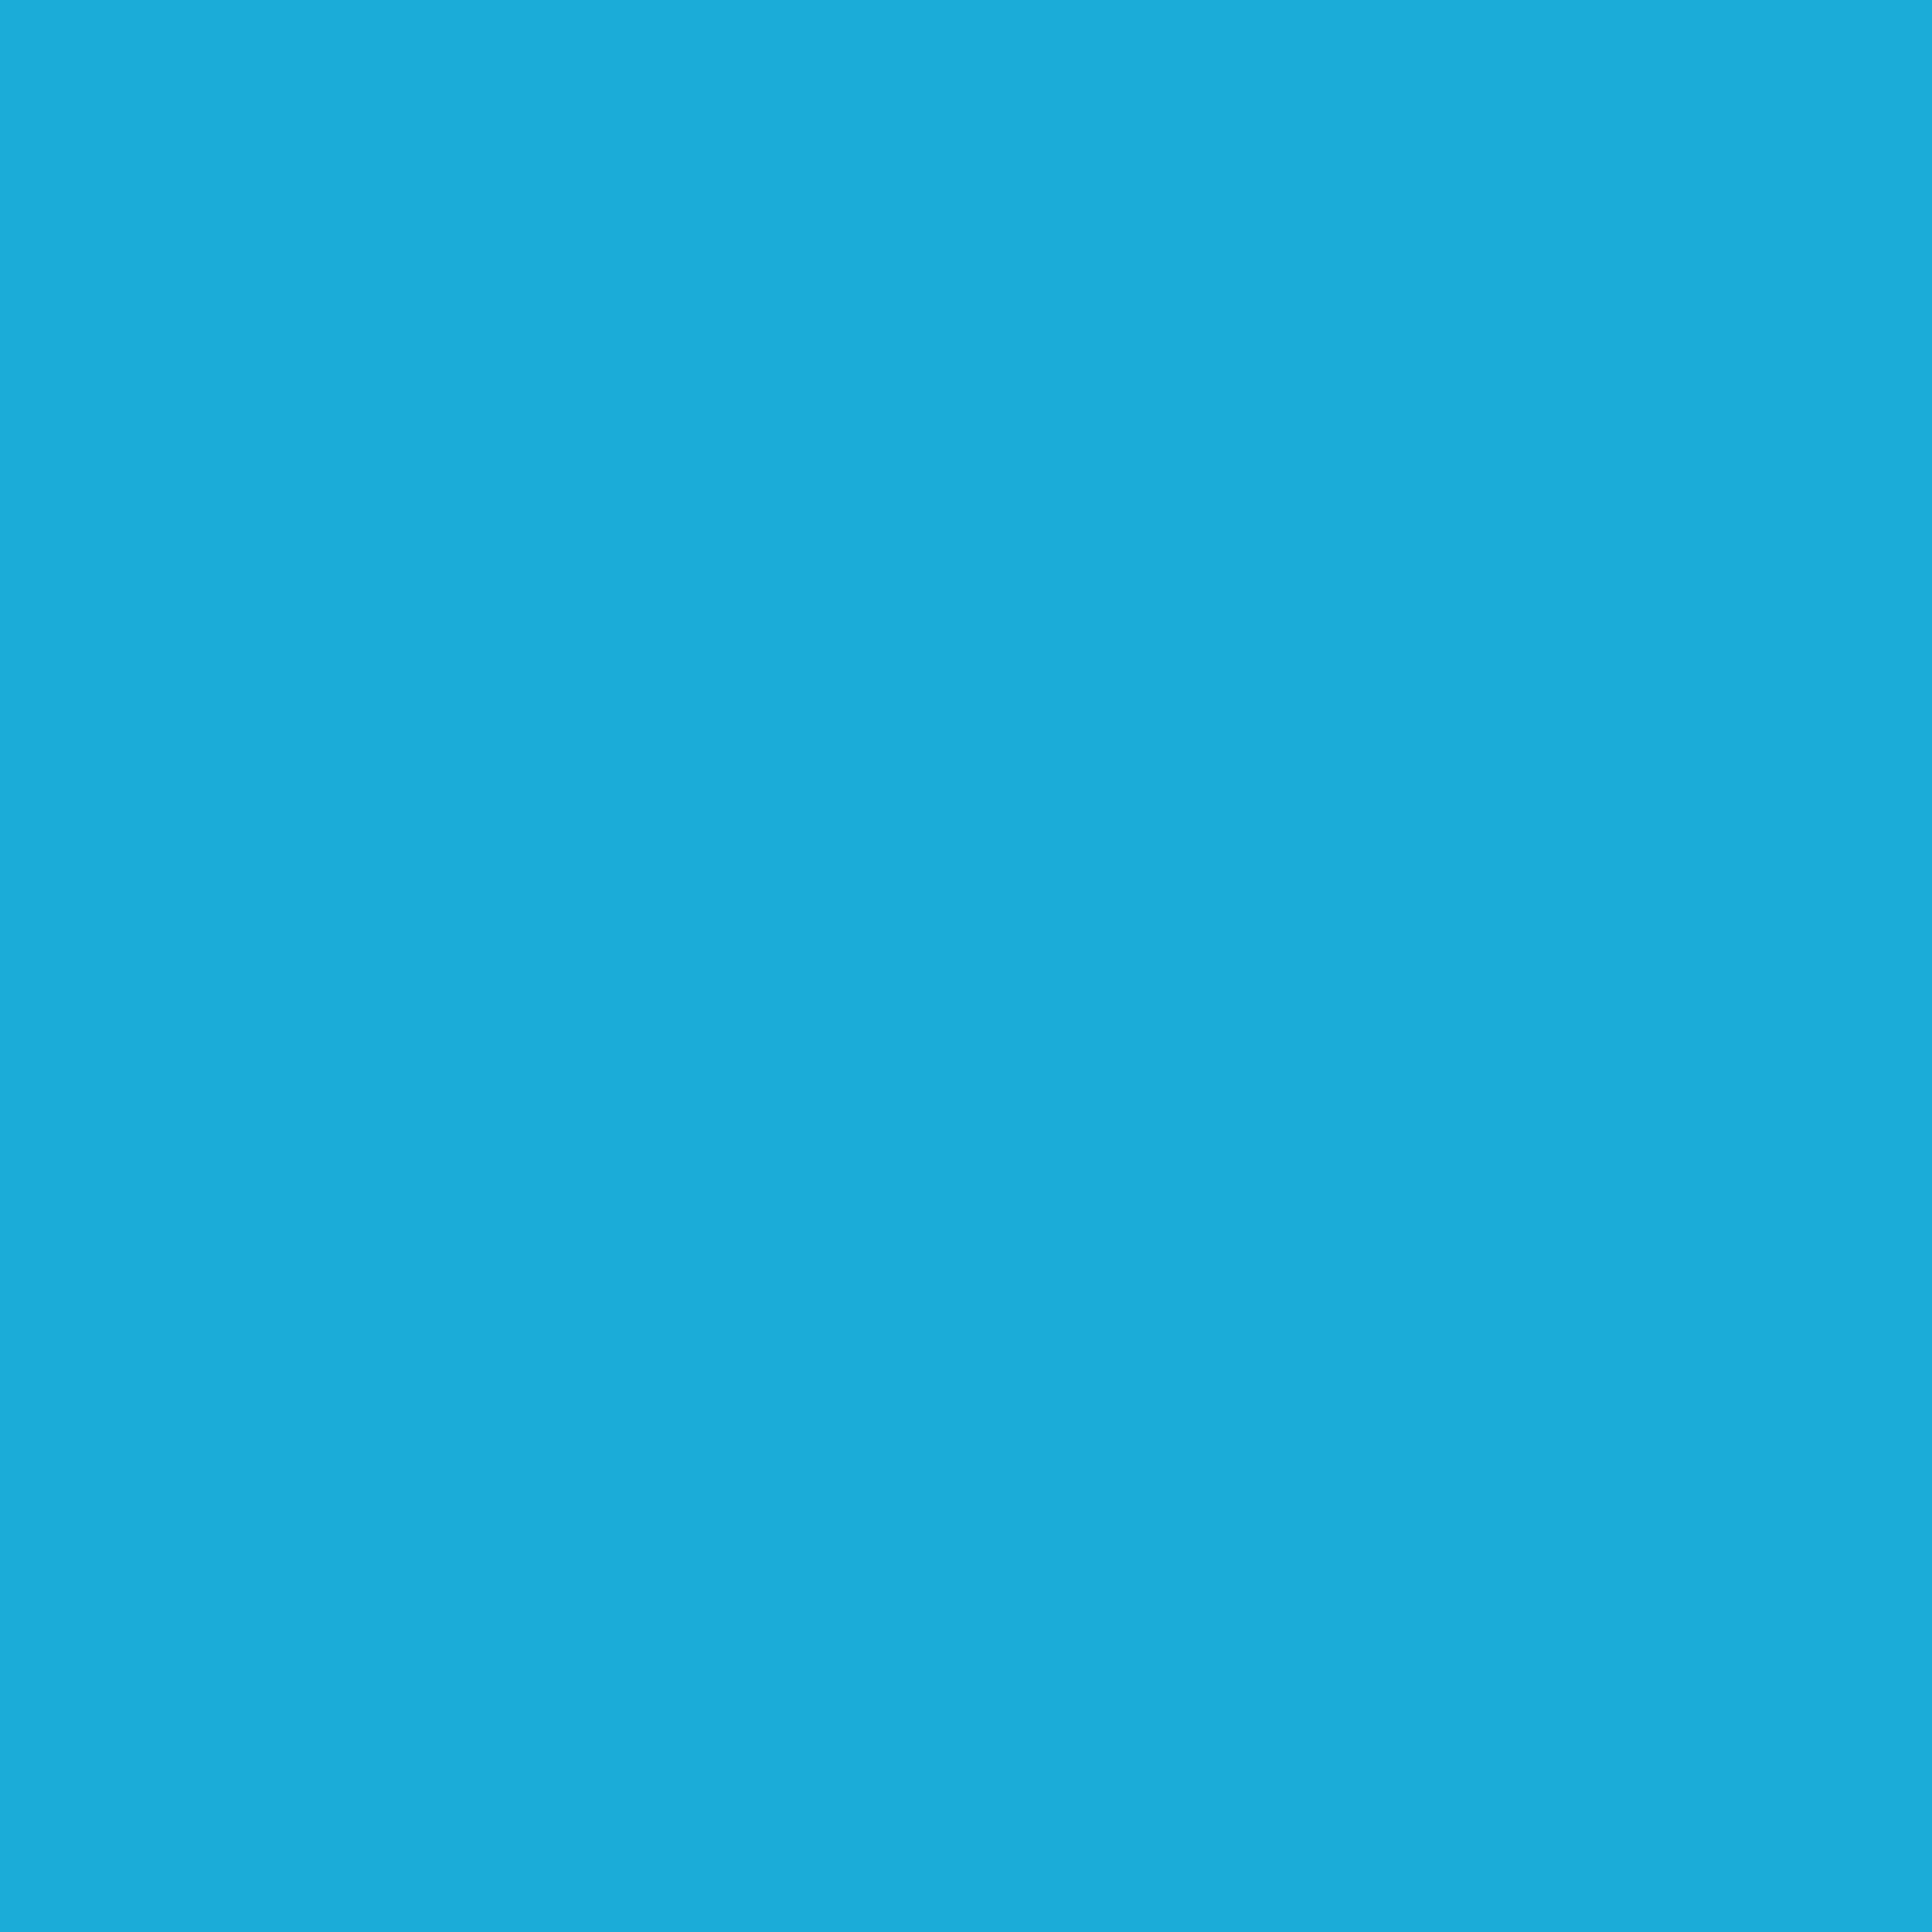 2732x2732 Bright Cerulean Solid Color Background